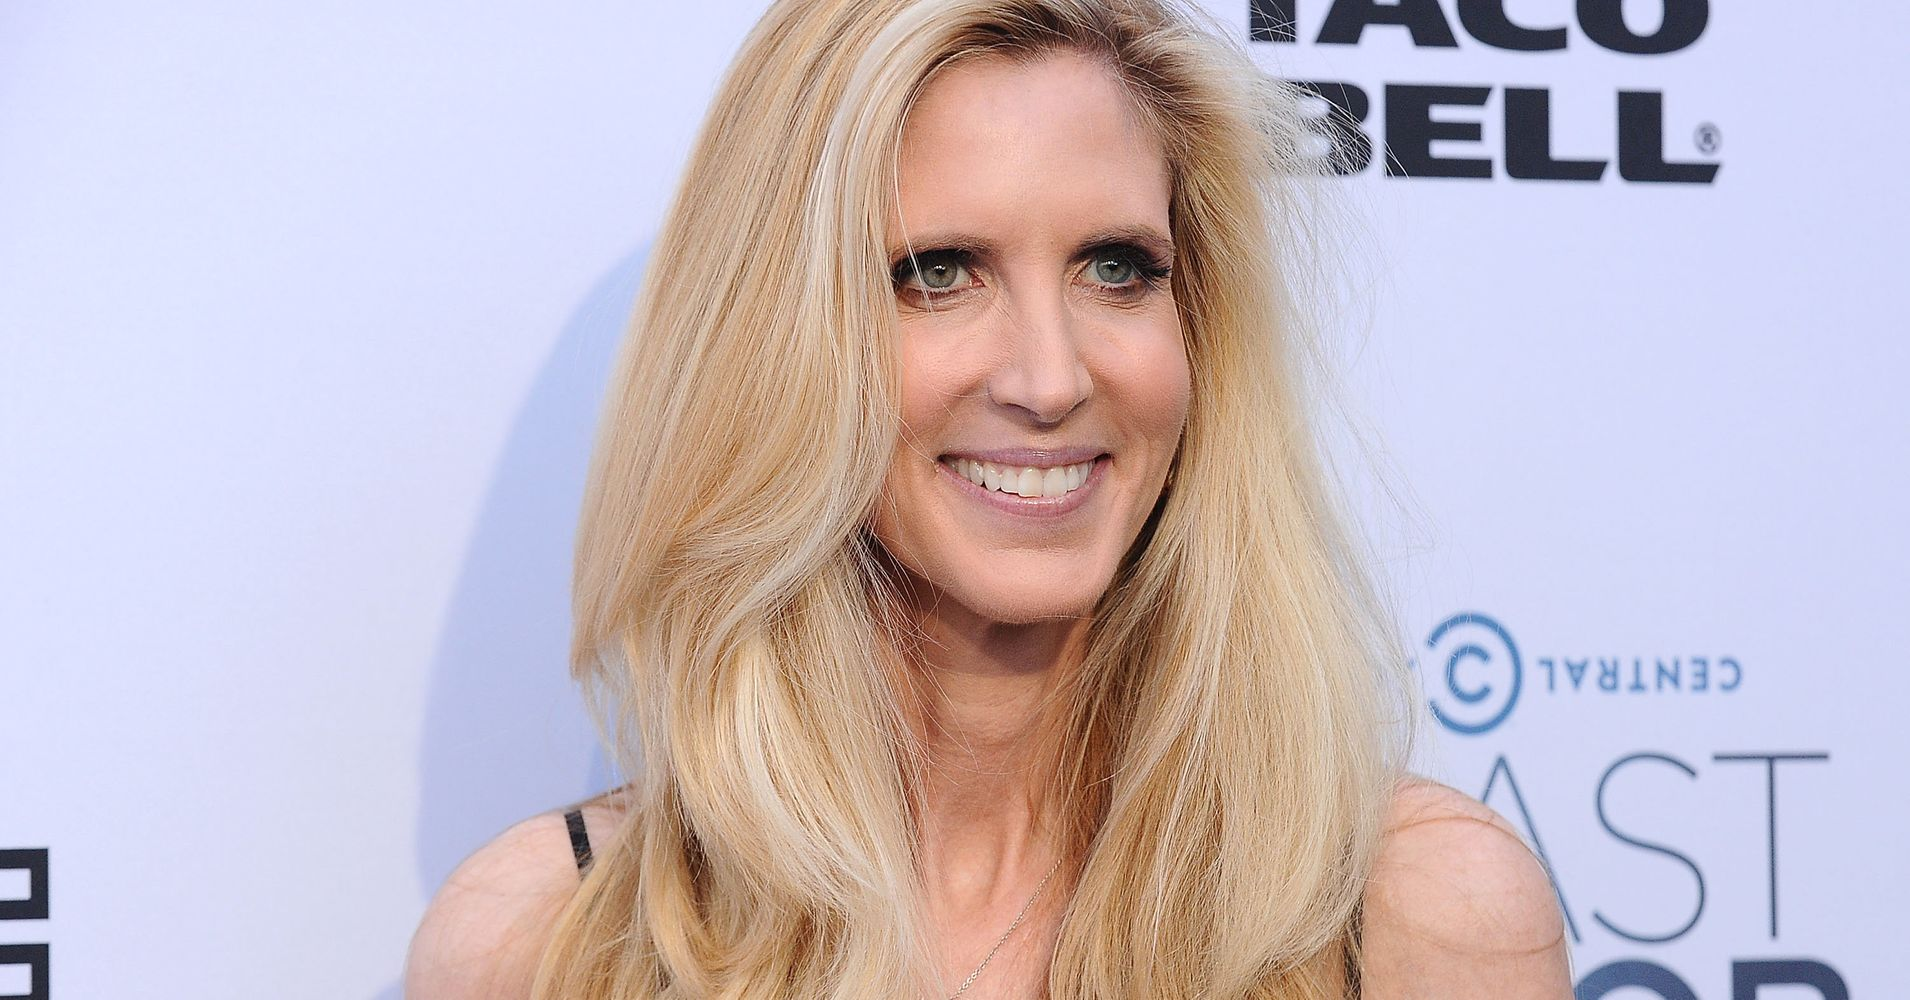 coulters women Enjoy the best ann coulter quotes at brainyquote quotations by ann coulter, american journalist, born december 8, 1961 share with your friends.